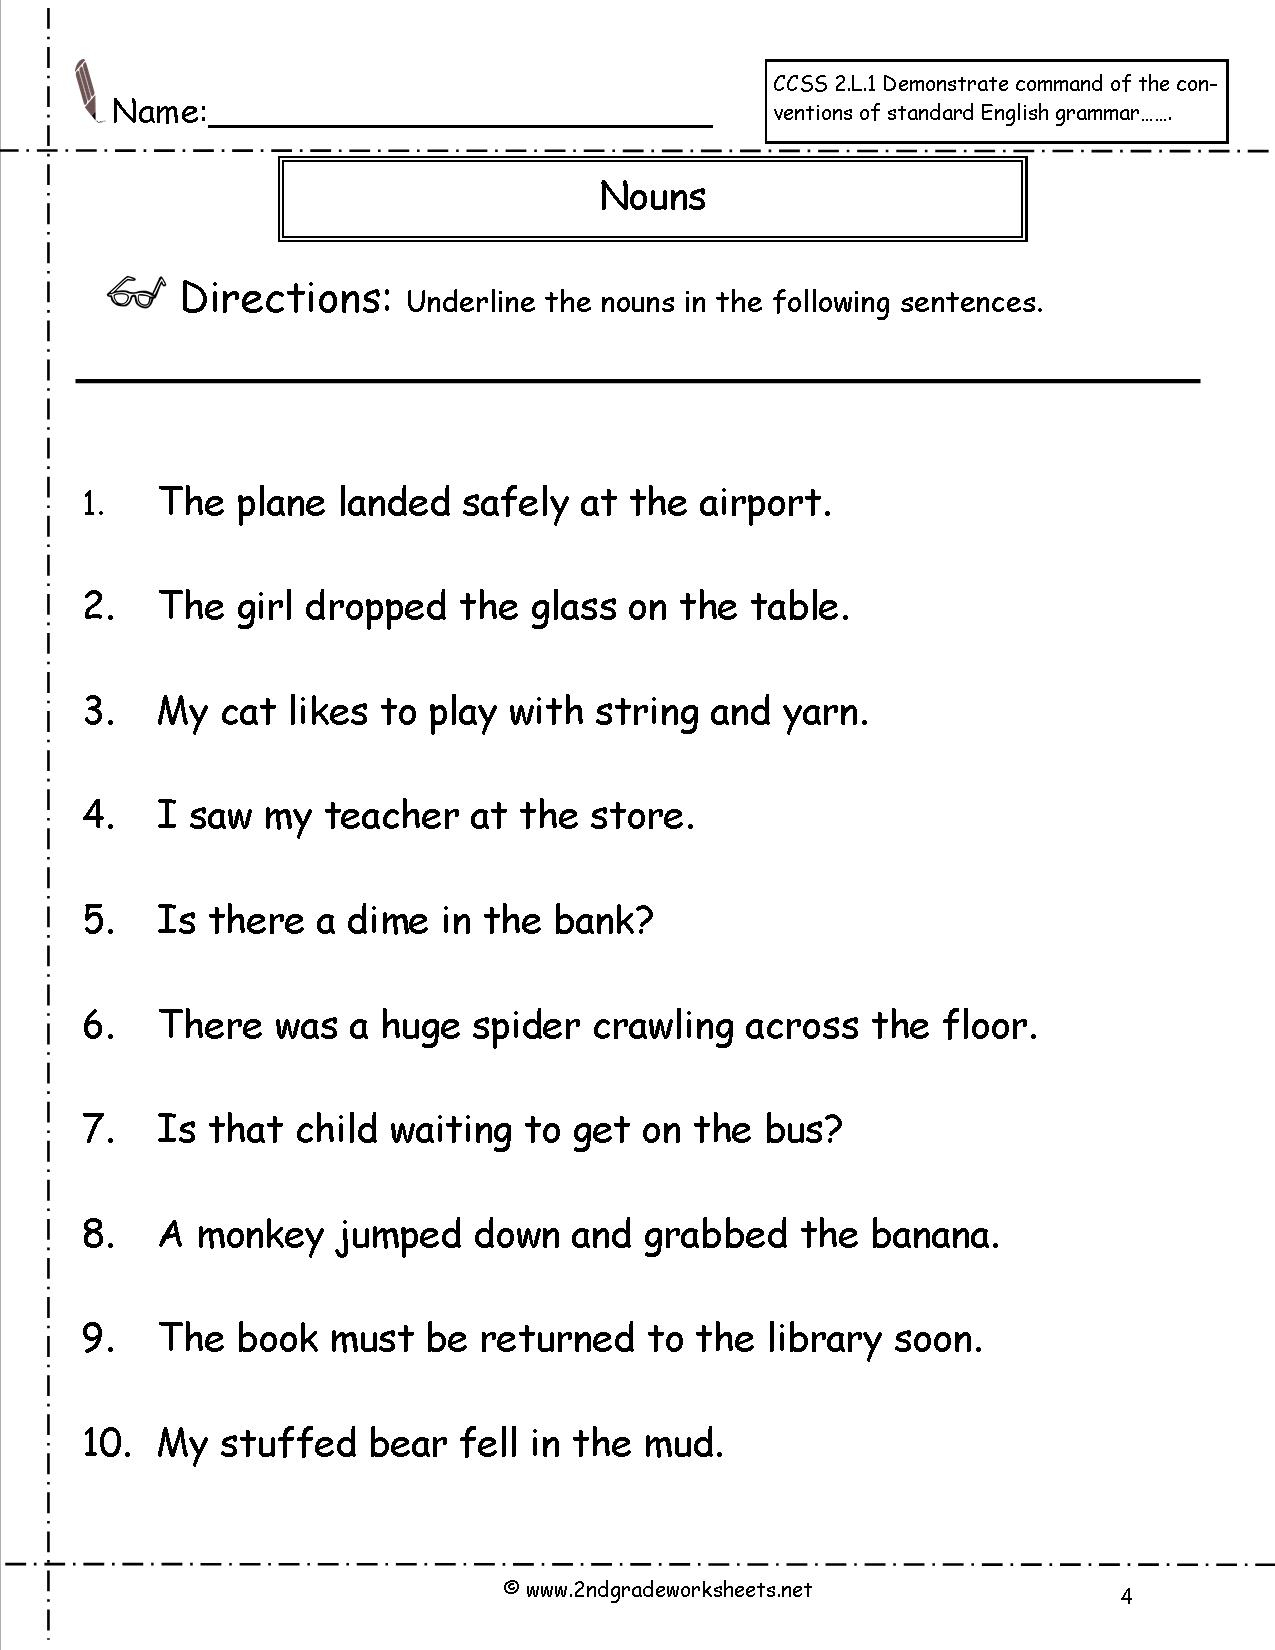 Nouns Worksheets And Printouts - Free Printable Pronoun Worksheets | Free Printable Pronoun Worksheets For 2Nd Grade